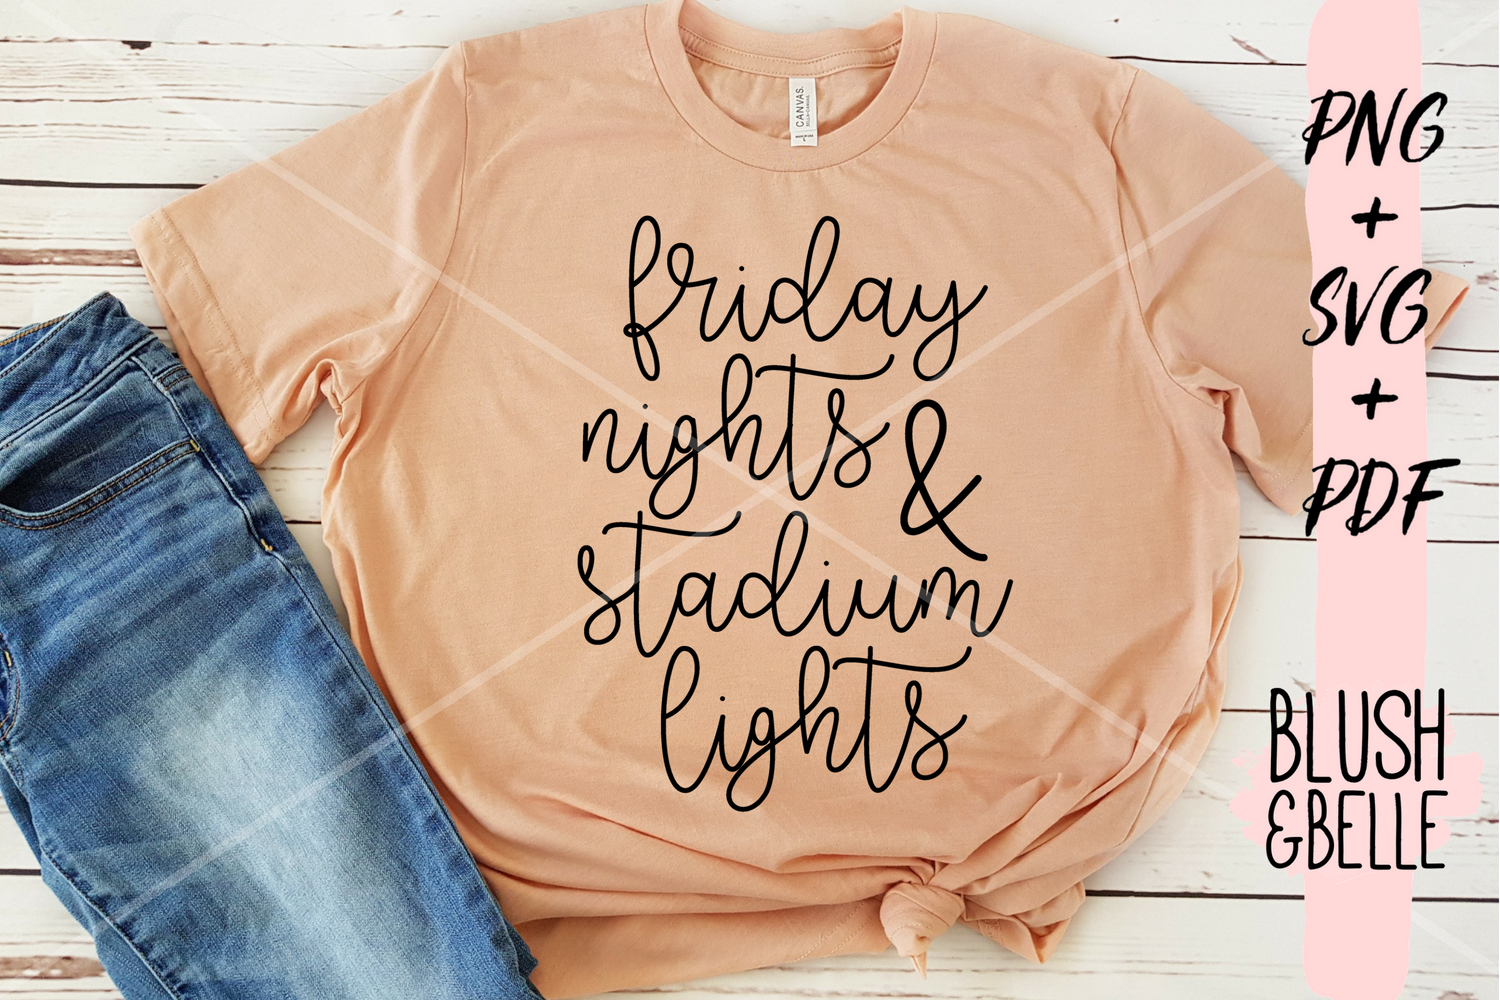 Friday Nights & Stadium Lights - PNG, SVG, PDF example image 3